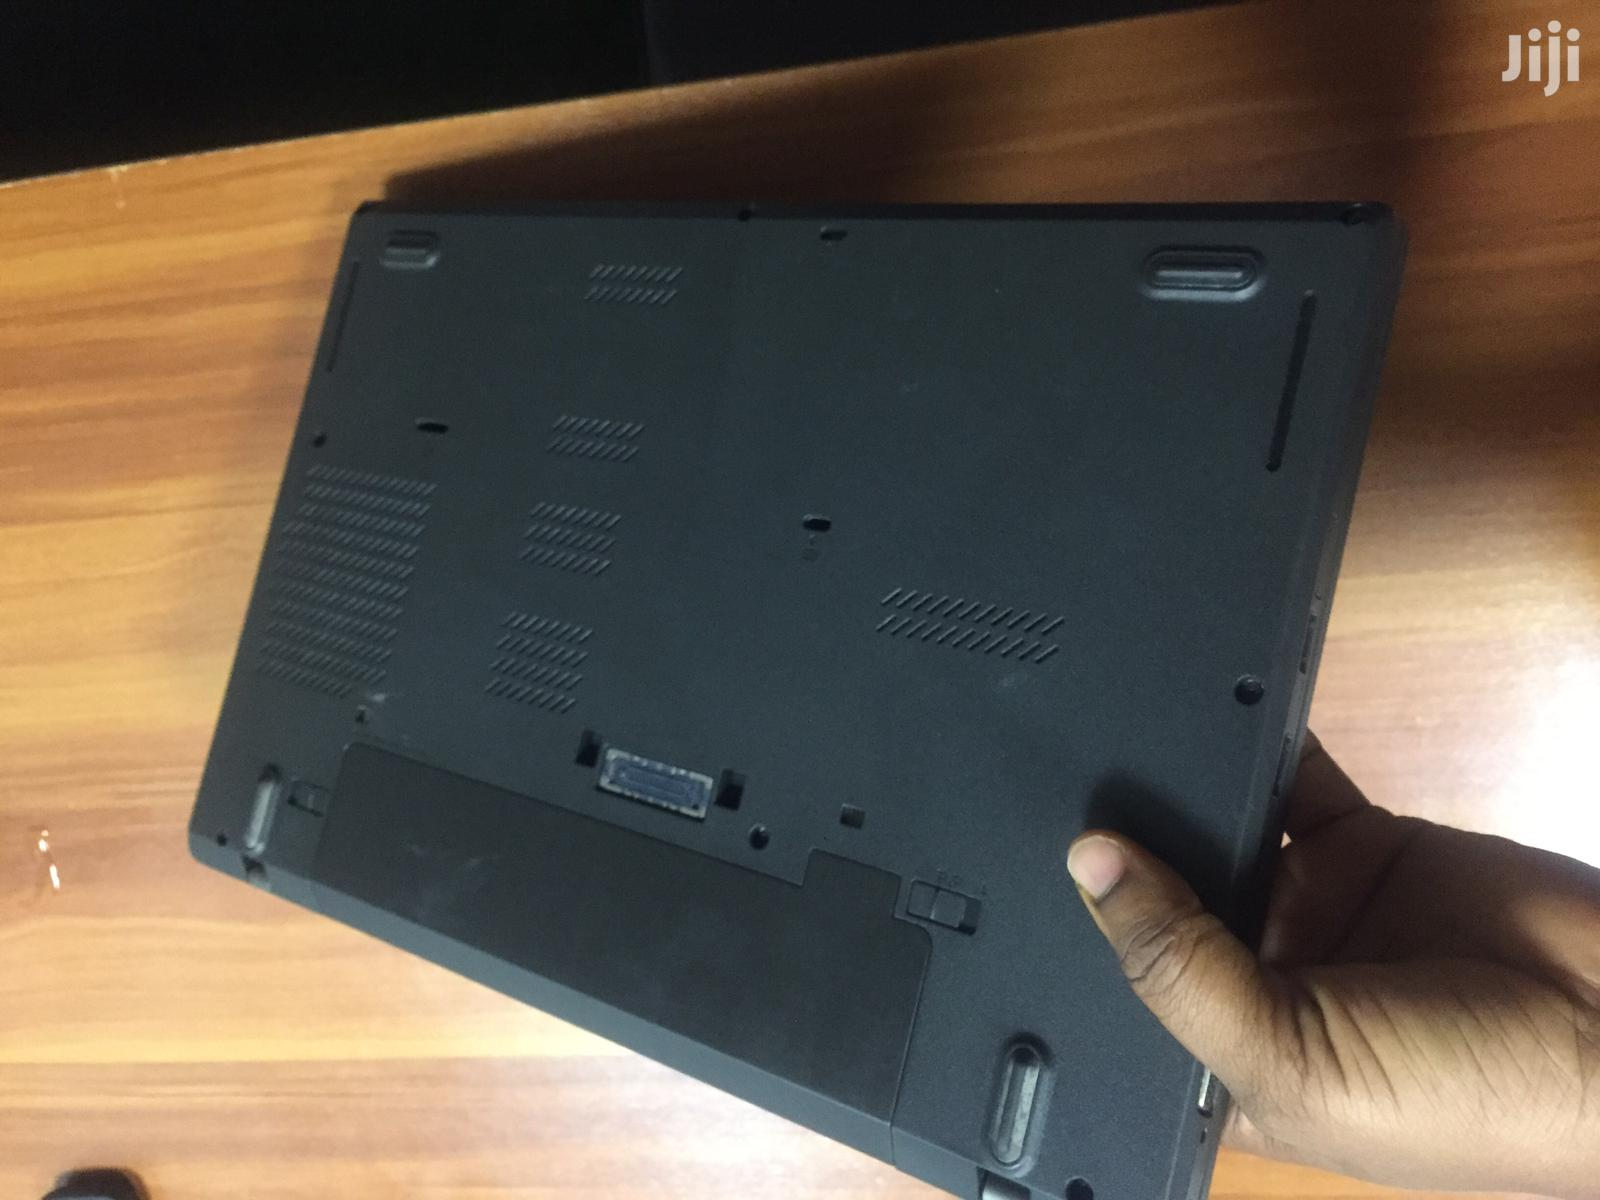 Laptop Lenovo ThinkPad L440 8GB Intel Core I5 SSD 128GB   Laptops & Computers for sale in Achimota, Greater Accra, Ghana